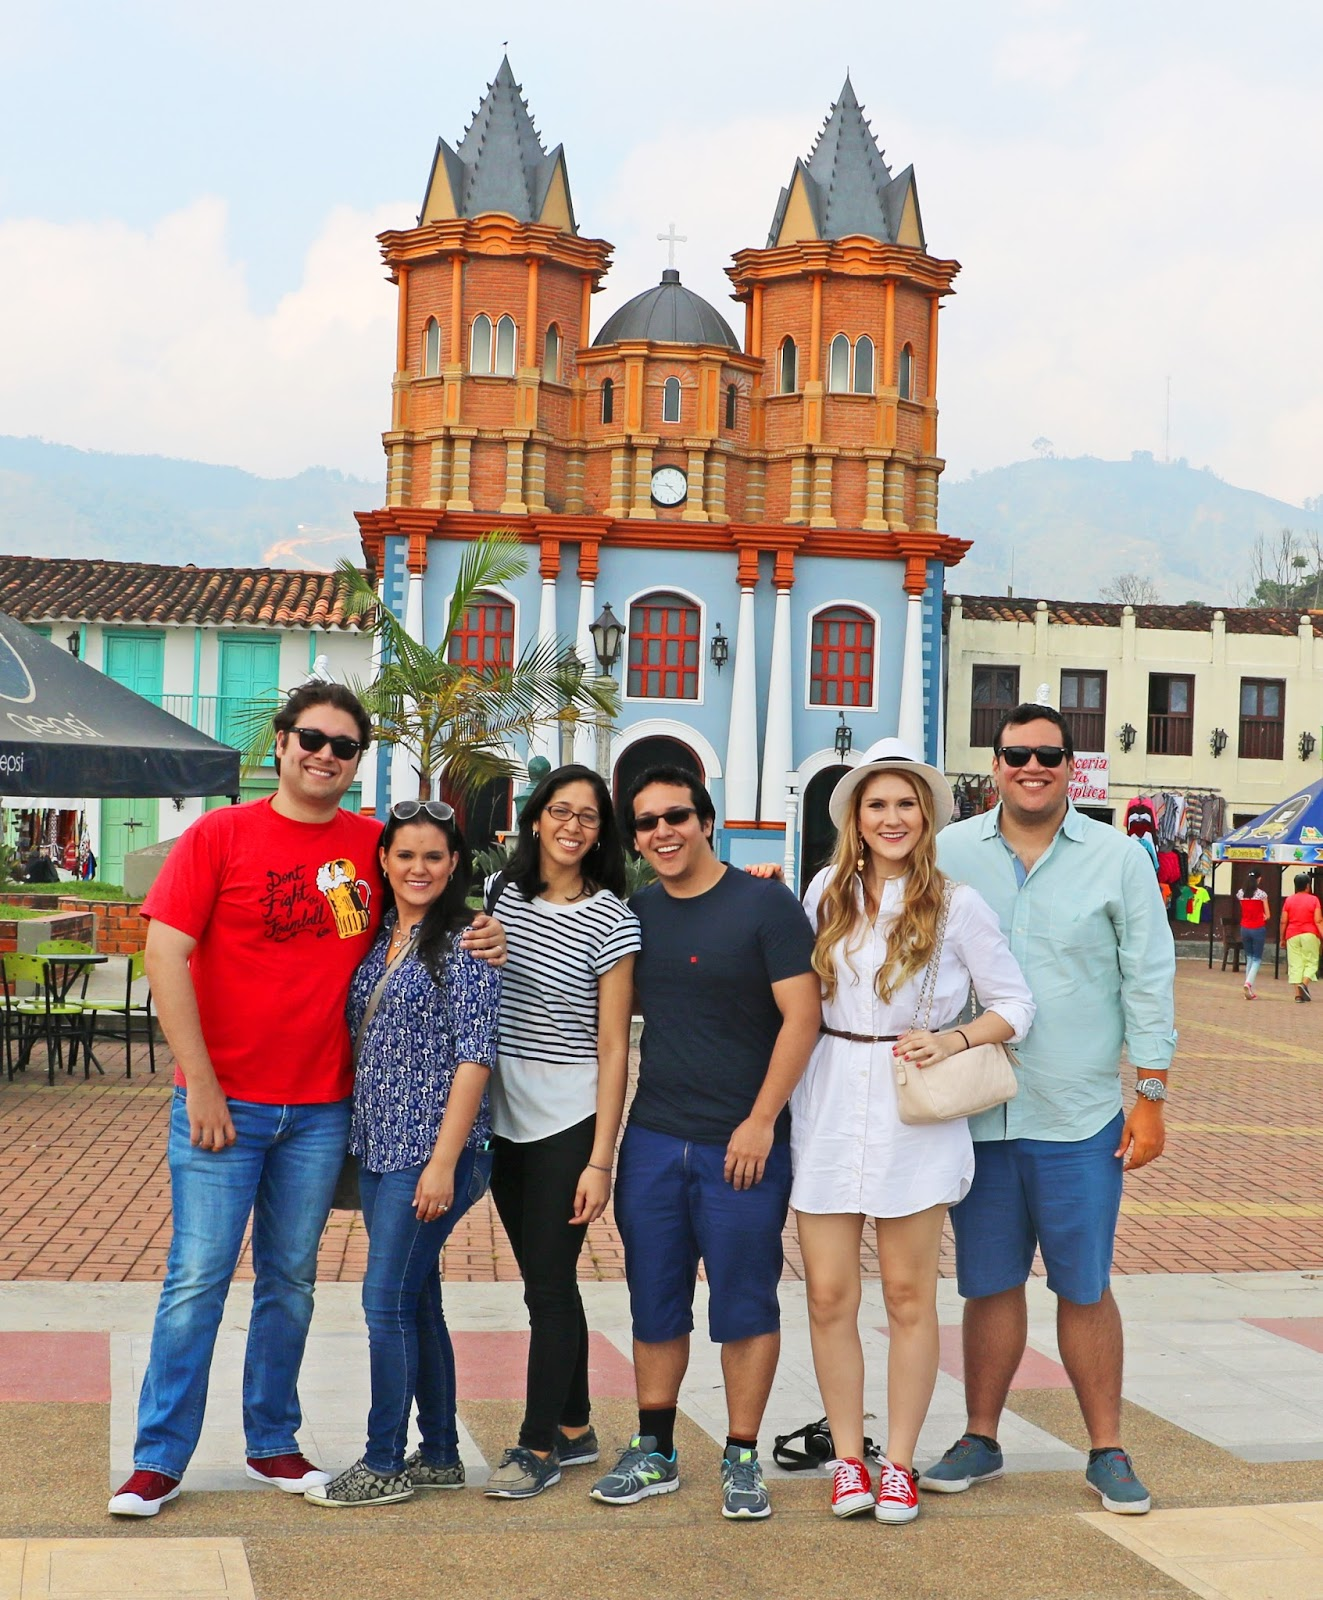 Cute church in Medellin, Colombia